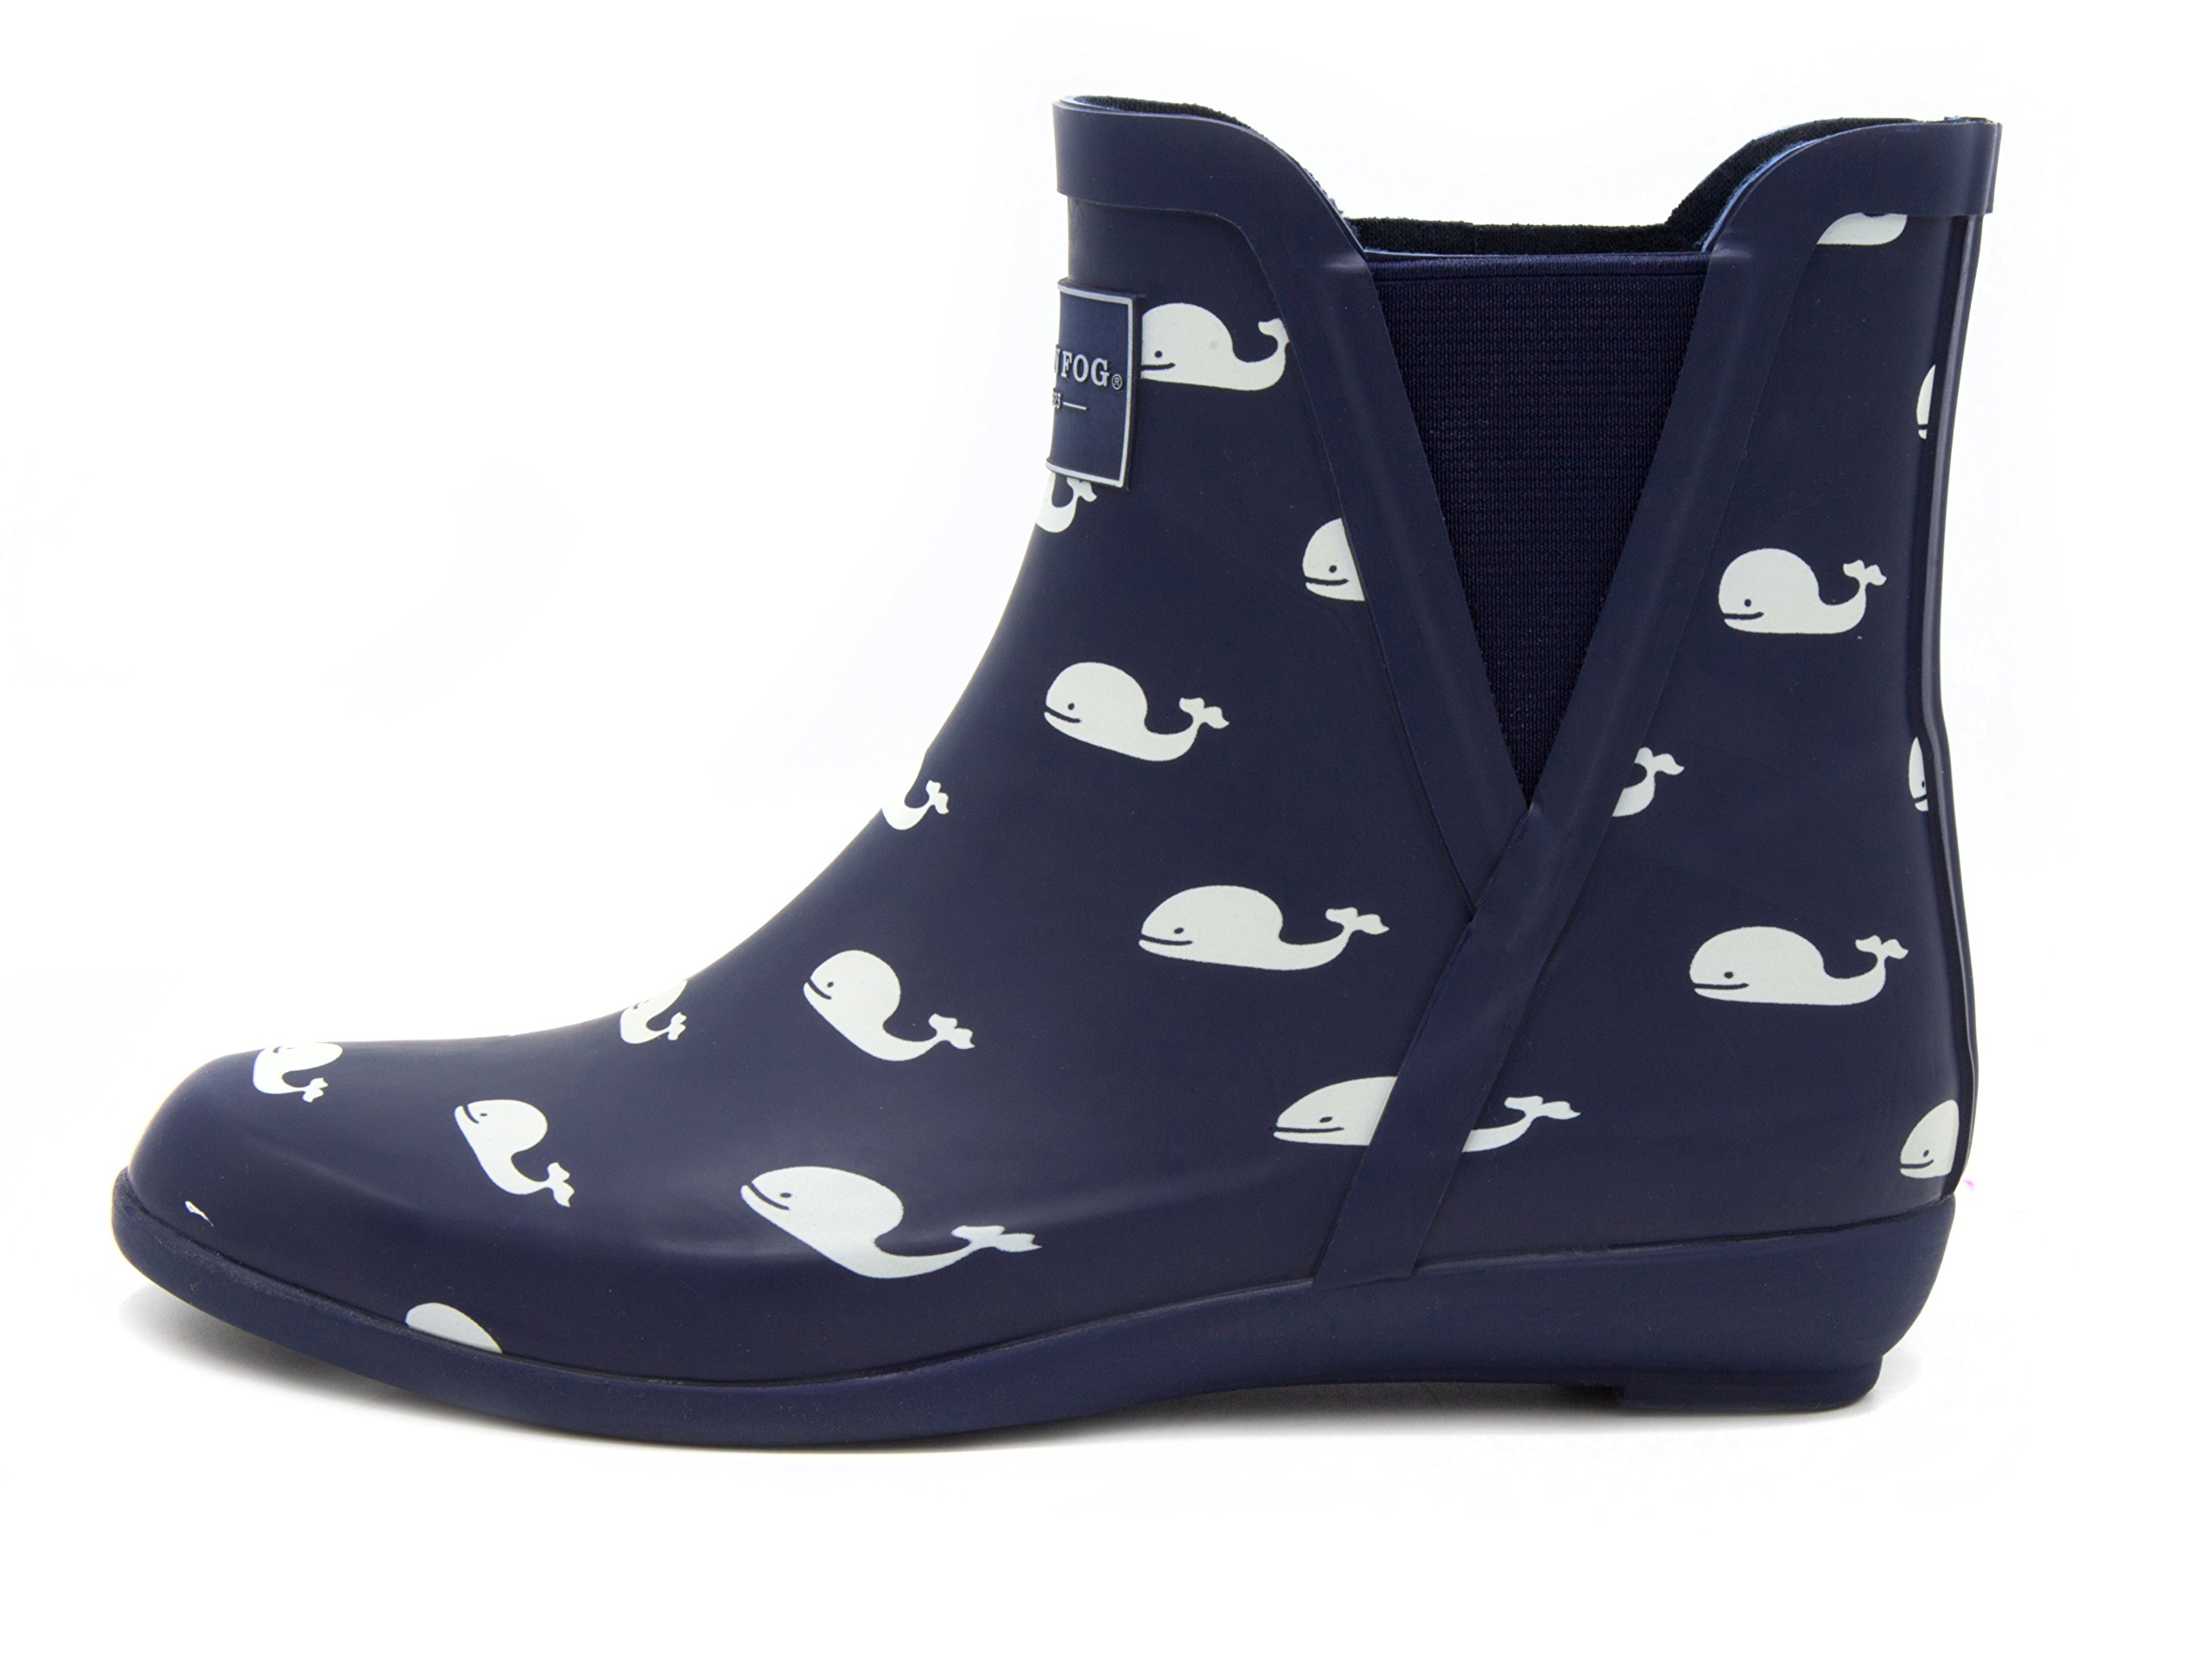 London Fog Womens Piccadilly Rain Boot Navy Whales 9 M US by London Fog (Image #2)